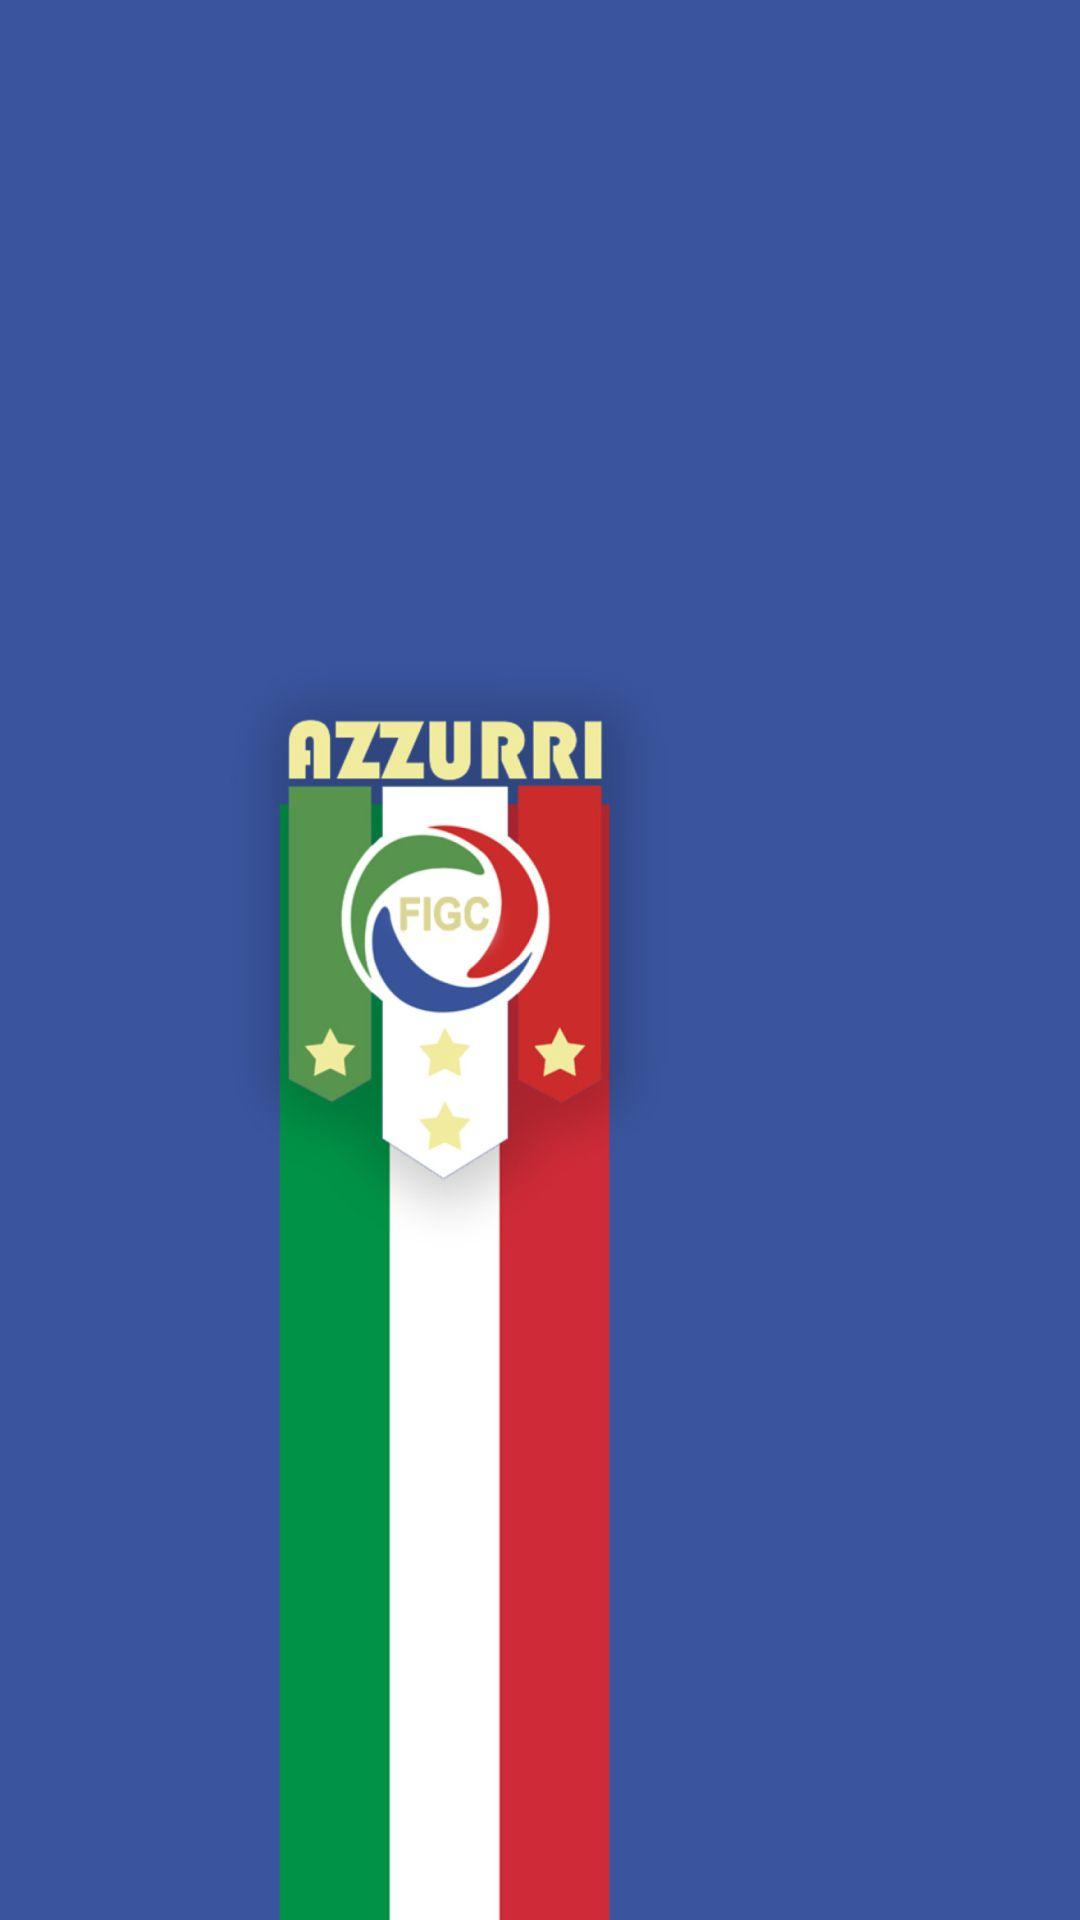 Italy National Football Team Wallpapers, High Definition Italy